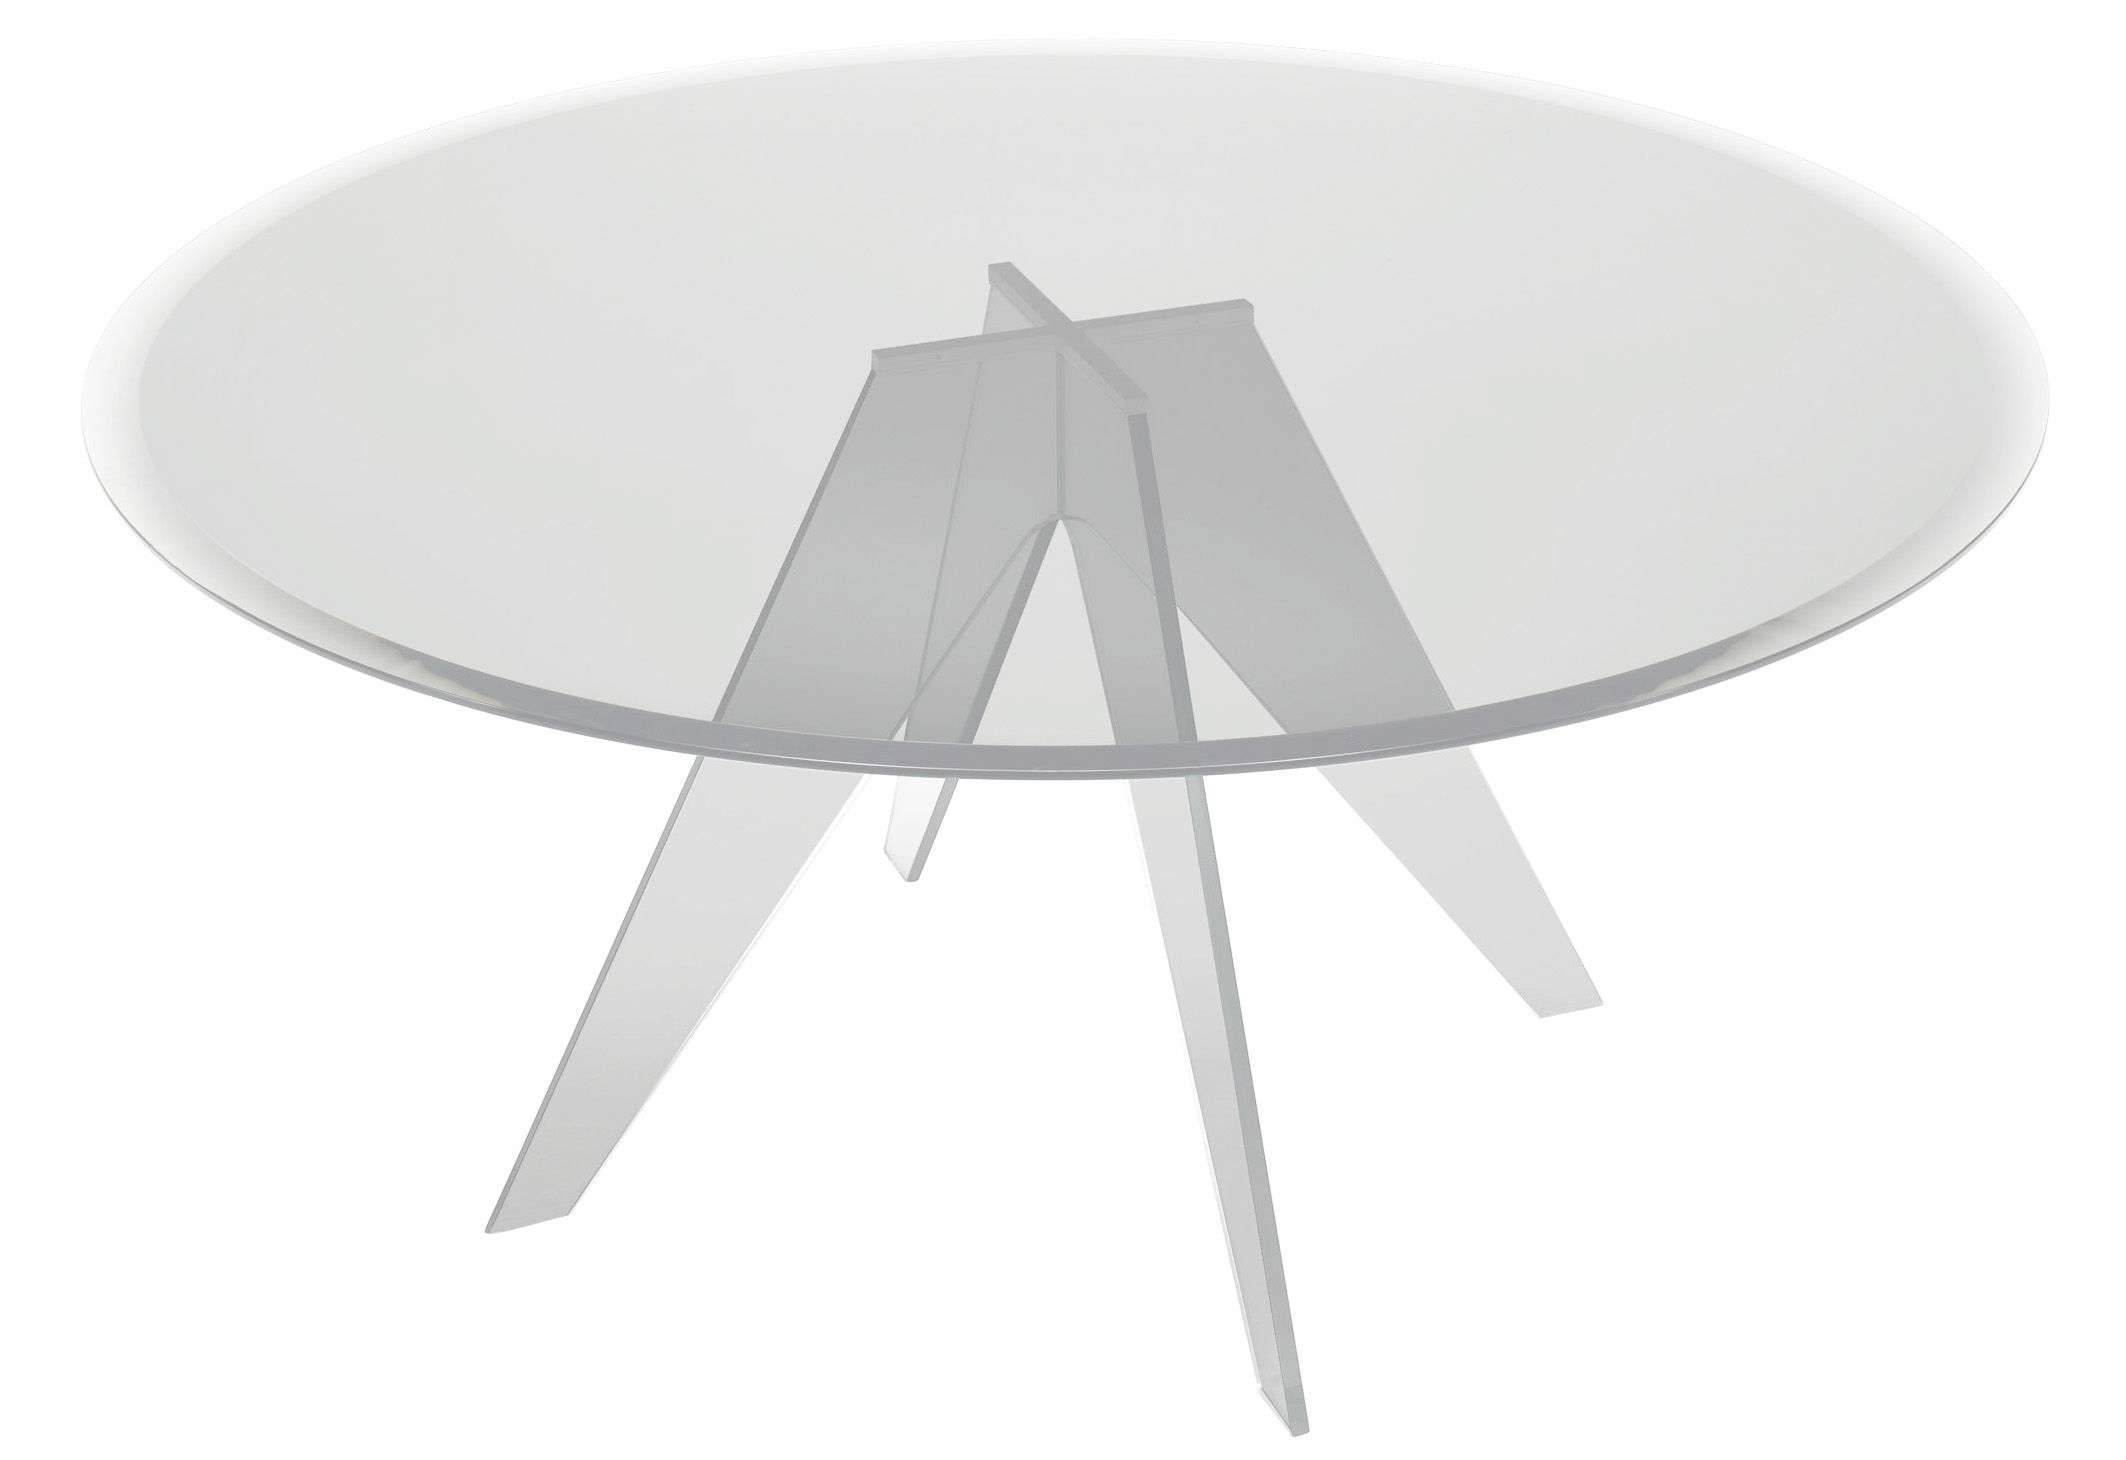 Furniture - Dining Tables - Alister Round table - Ø 130 cm by Glas Italia - Ø 130 cm - Transparent glass - Glass